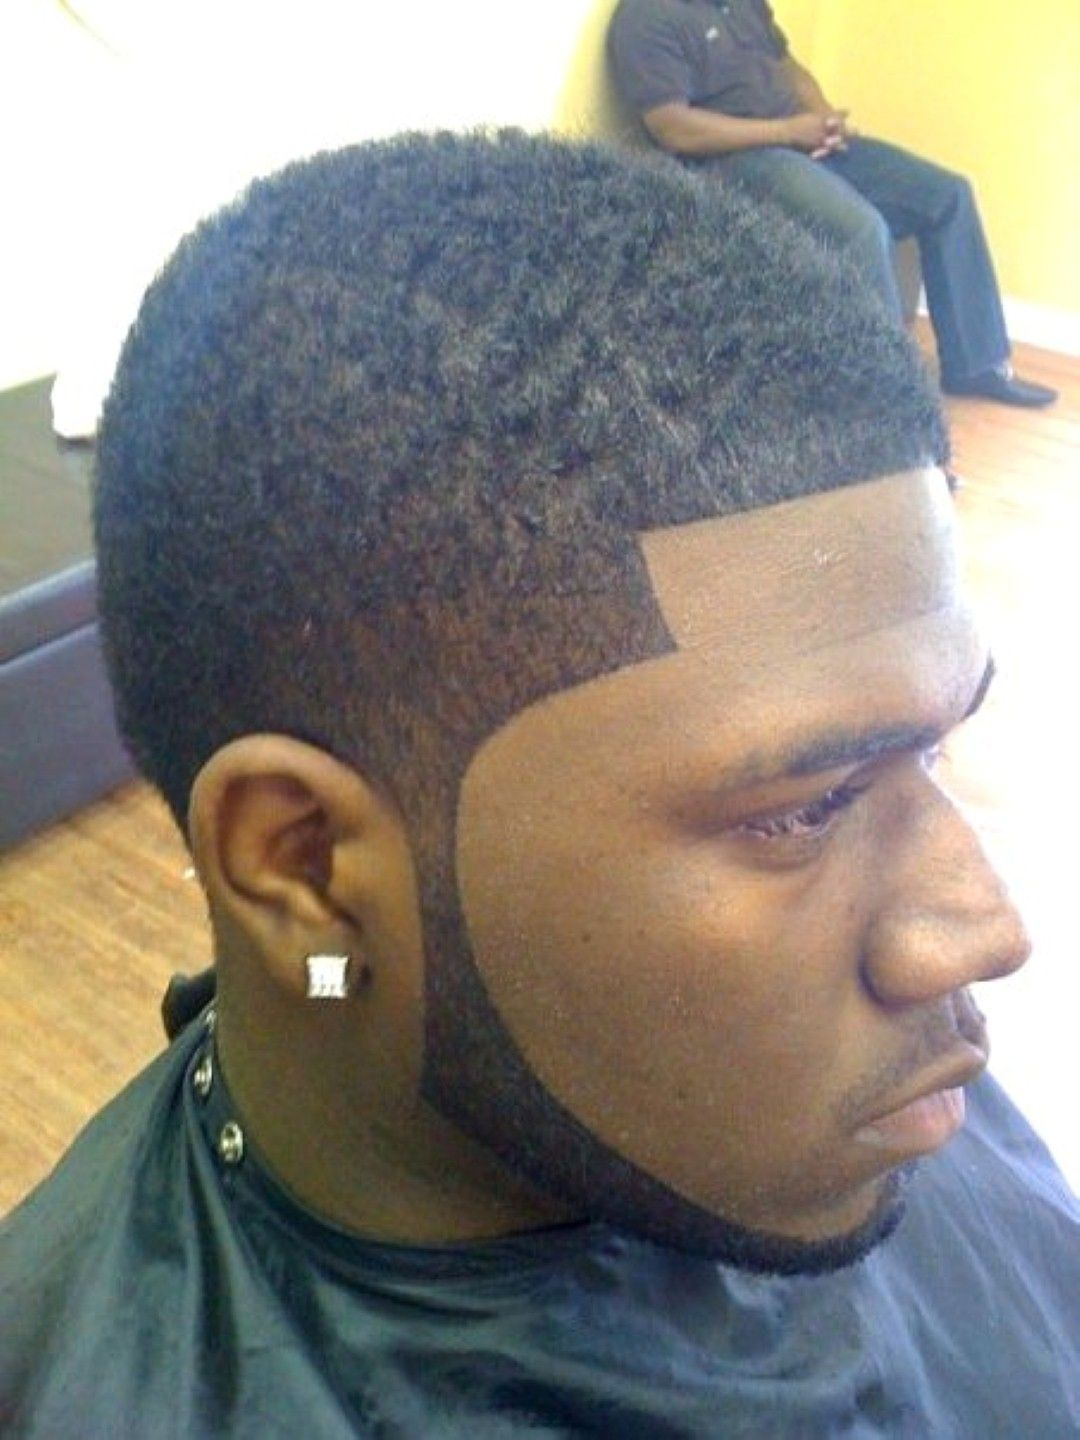 Always Always Get A Fresh Cut Before You Go Out Anywhere It Makes